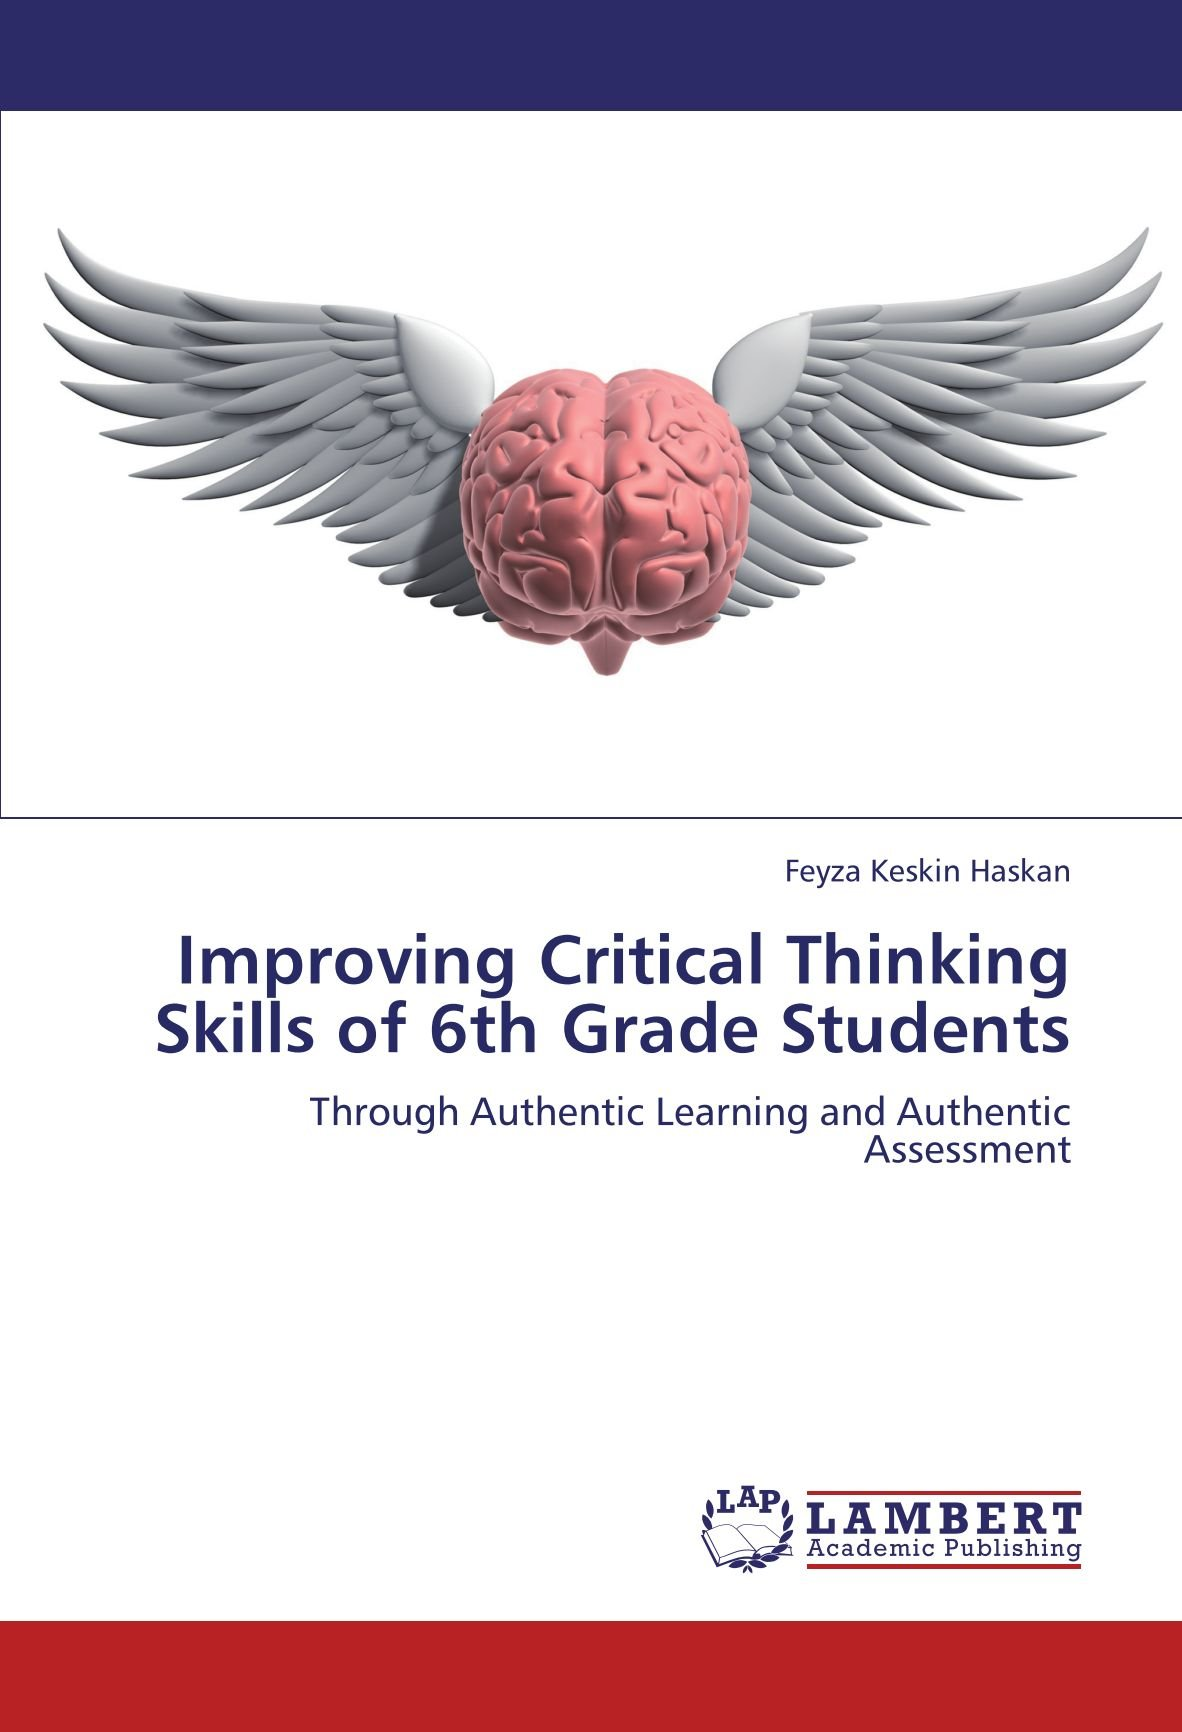 Improving Critical Thinking Skills of 6th Grade Students: Through Authentic Learning and Authentic Assessment PDF